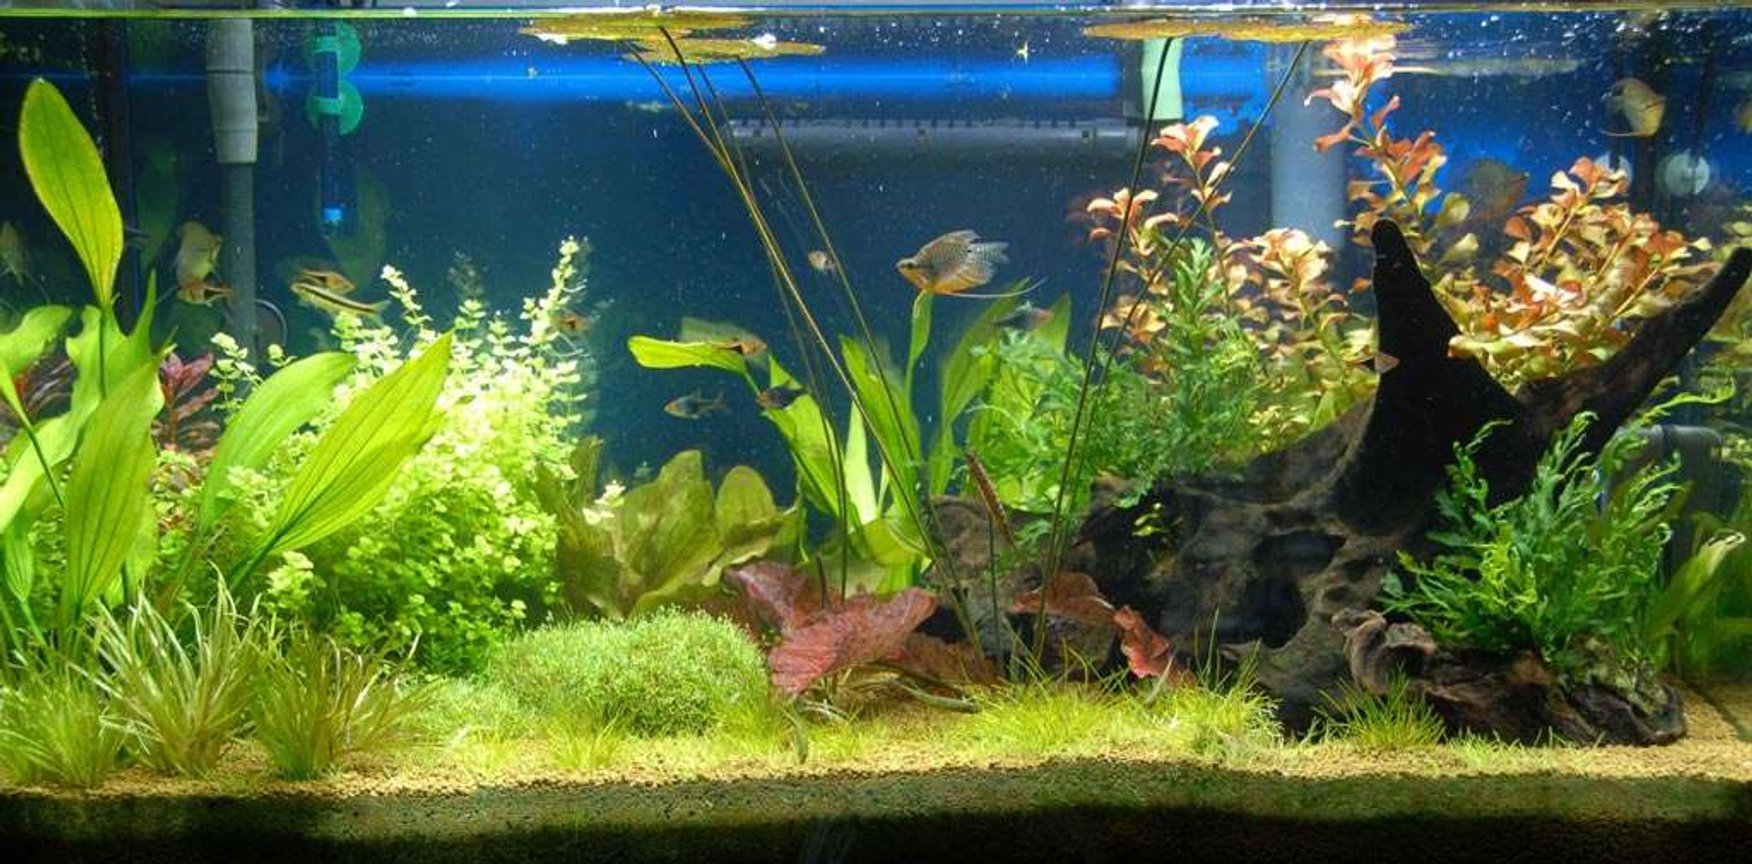 40 gallons planted tank (mostly live plants and fish) - My 40 gallon planted freshwater aquarium. I only discovered Takashi Amano after I started. Next time I'll try something in his style. Not a bad first effort though :-)